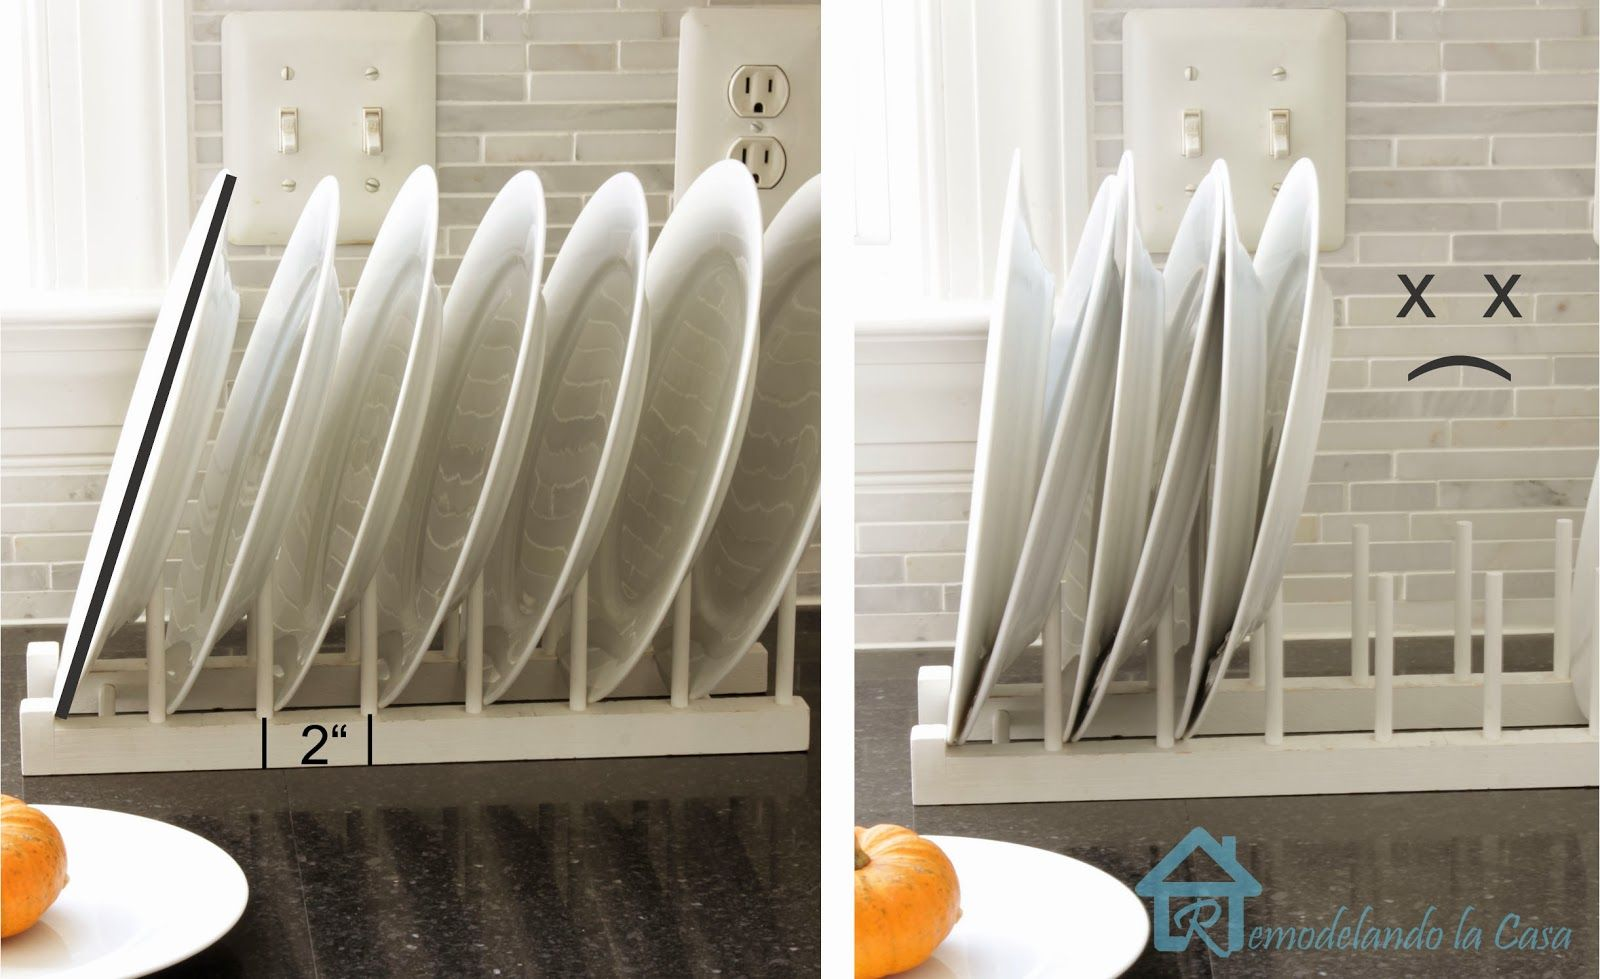 Easy to Build Plate Rack : plate rack display - pezcame.com